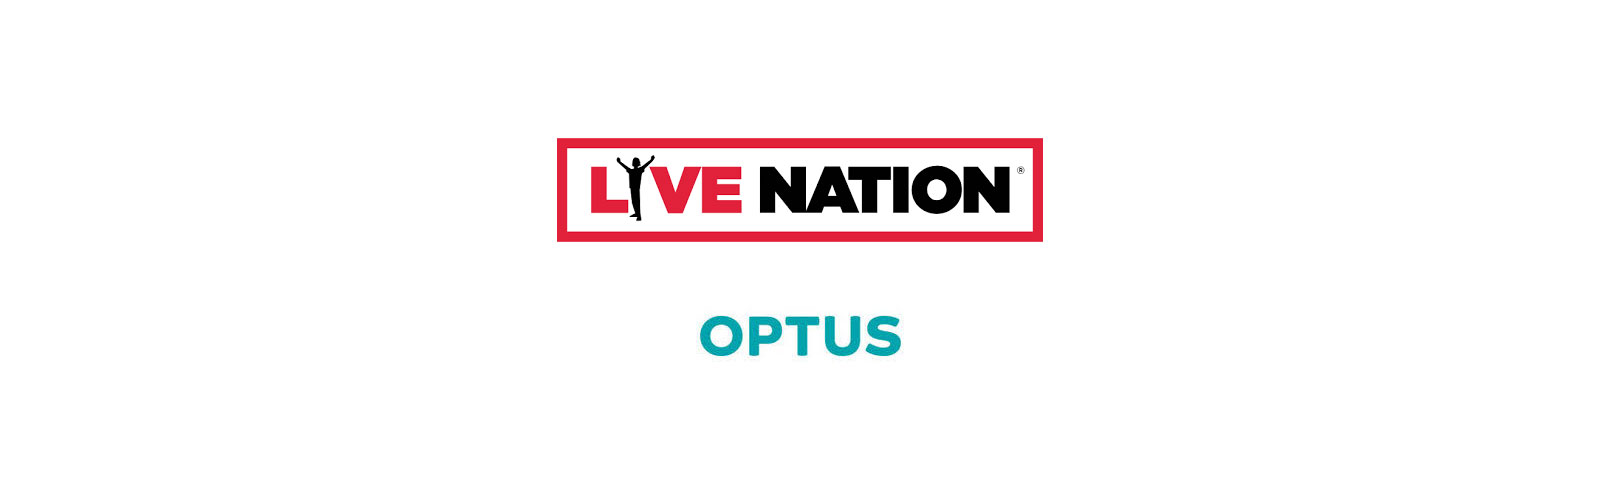 live-nation-optus